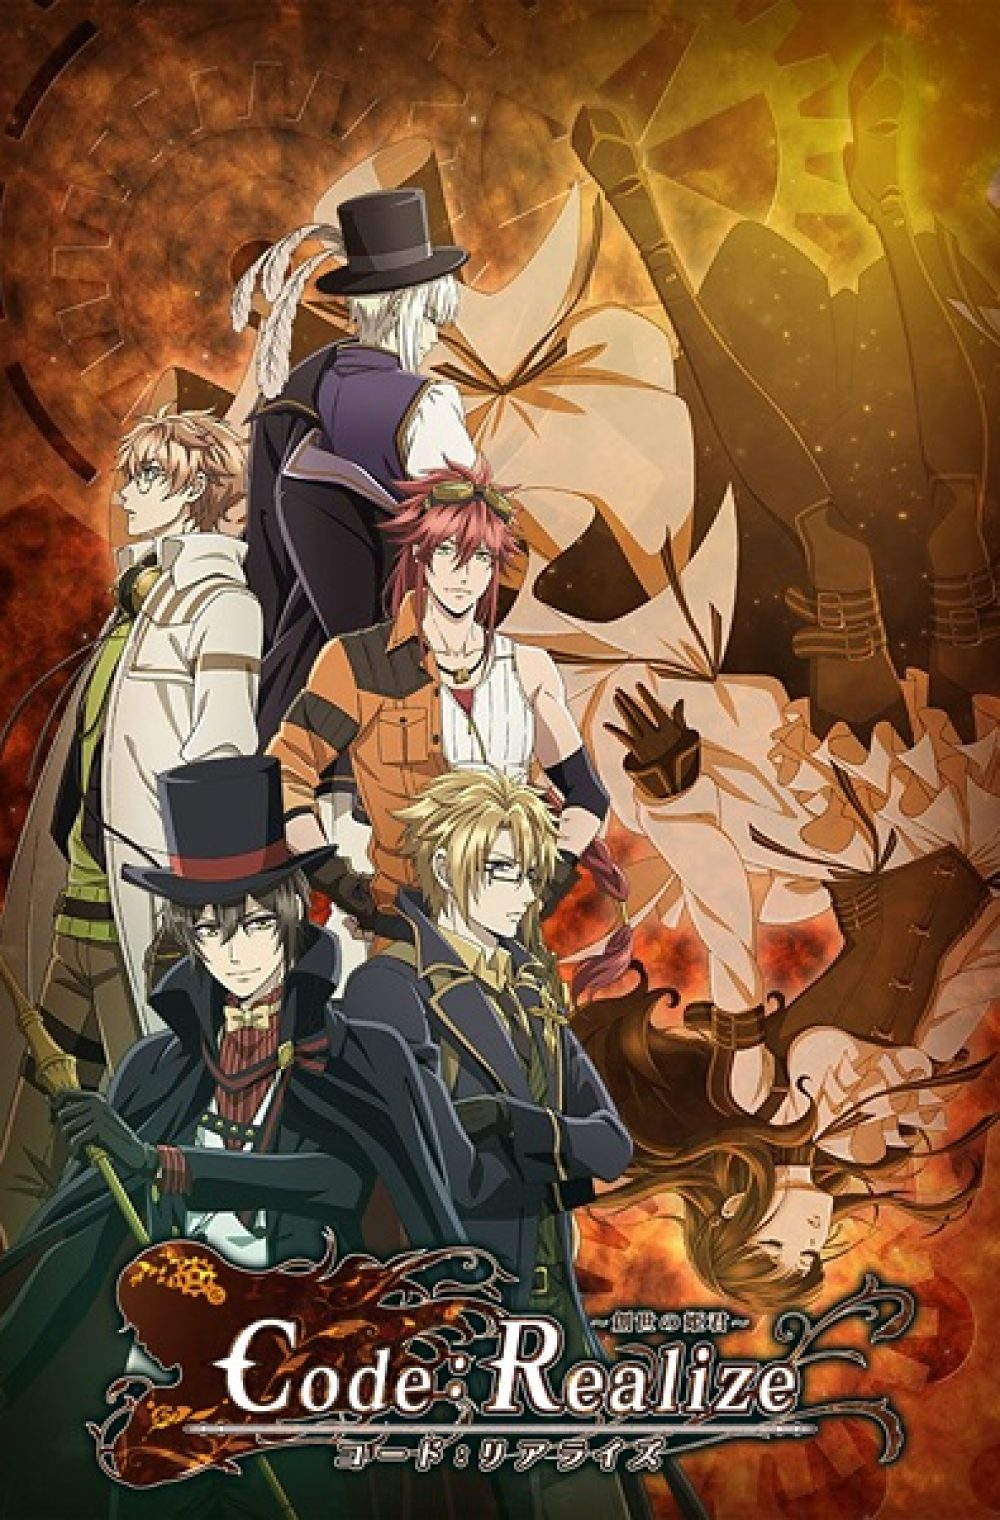 Code:Realize – Sousei no Himegimi